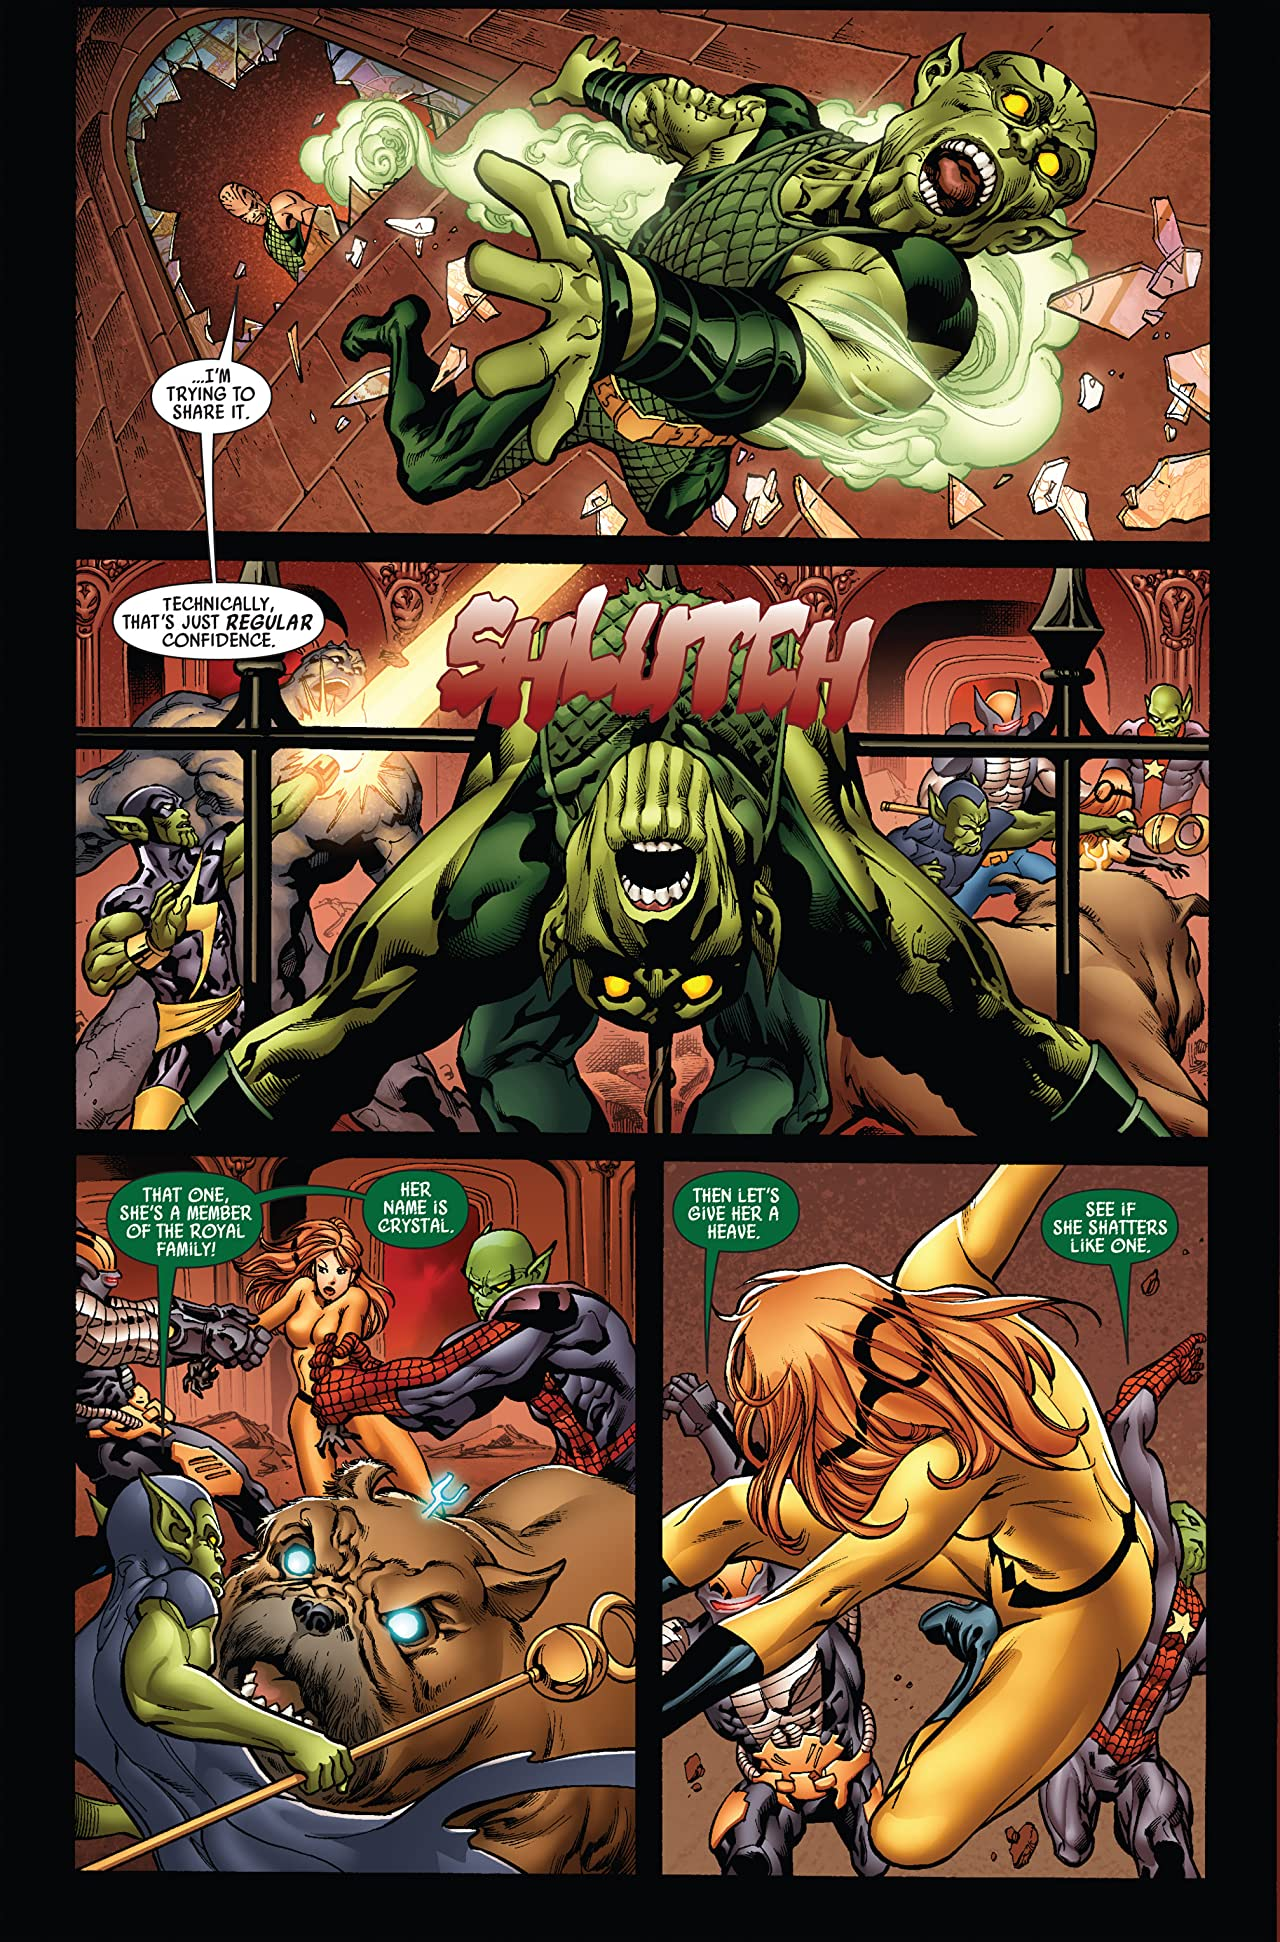 Secret Invasion: Inhumans #2 (of 4)